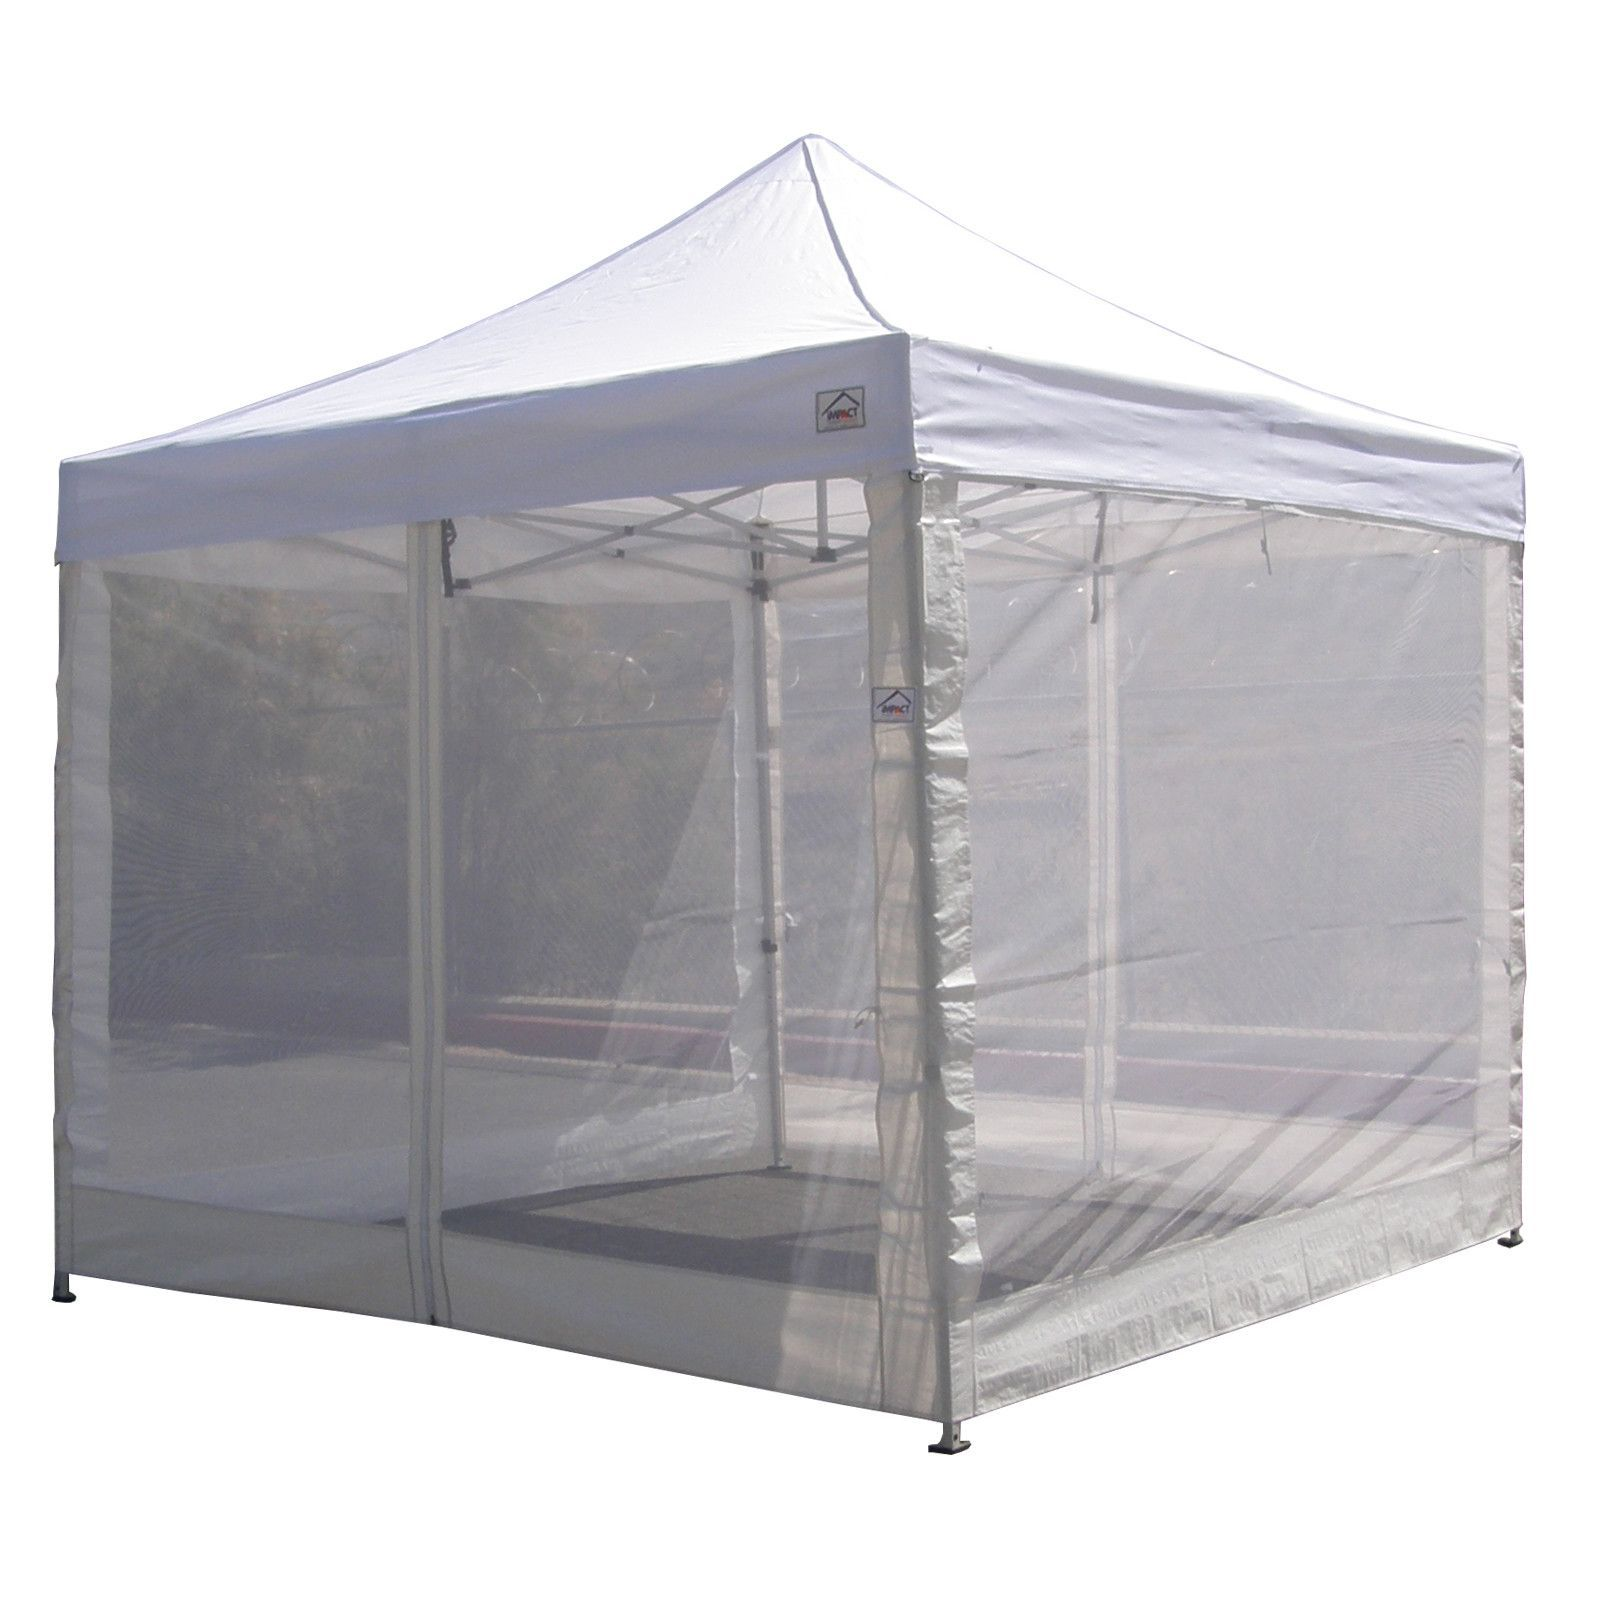 10 X10 Pop Up Mesh Mosquito Net Sidewalls Pop Up Canopy Tent Instant Canopy Canopy Tent